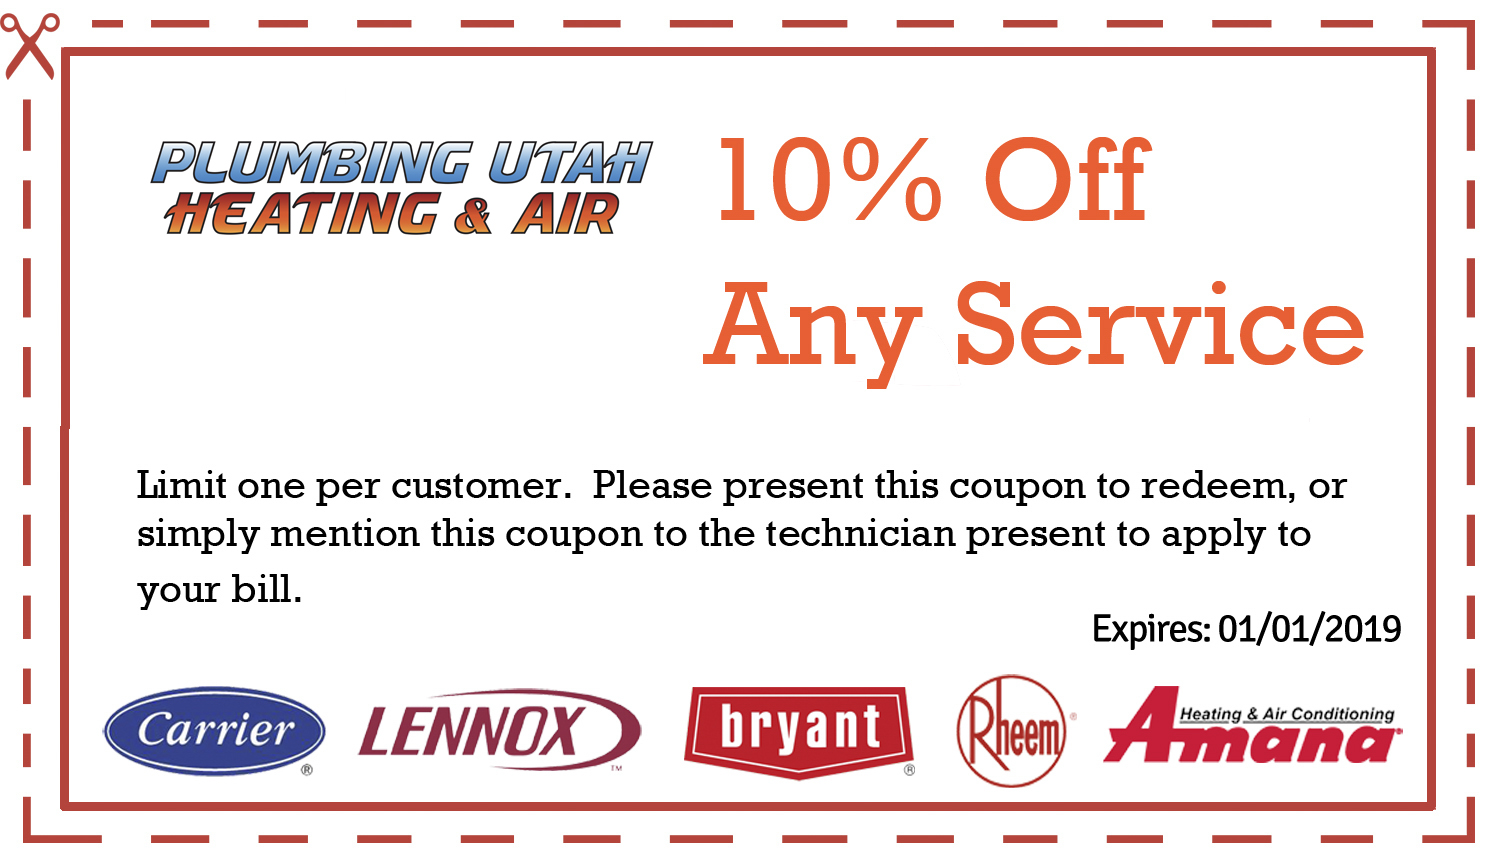 plumbing-utah-heating-air-10-percent-hvac